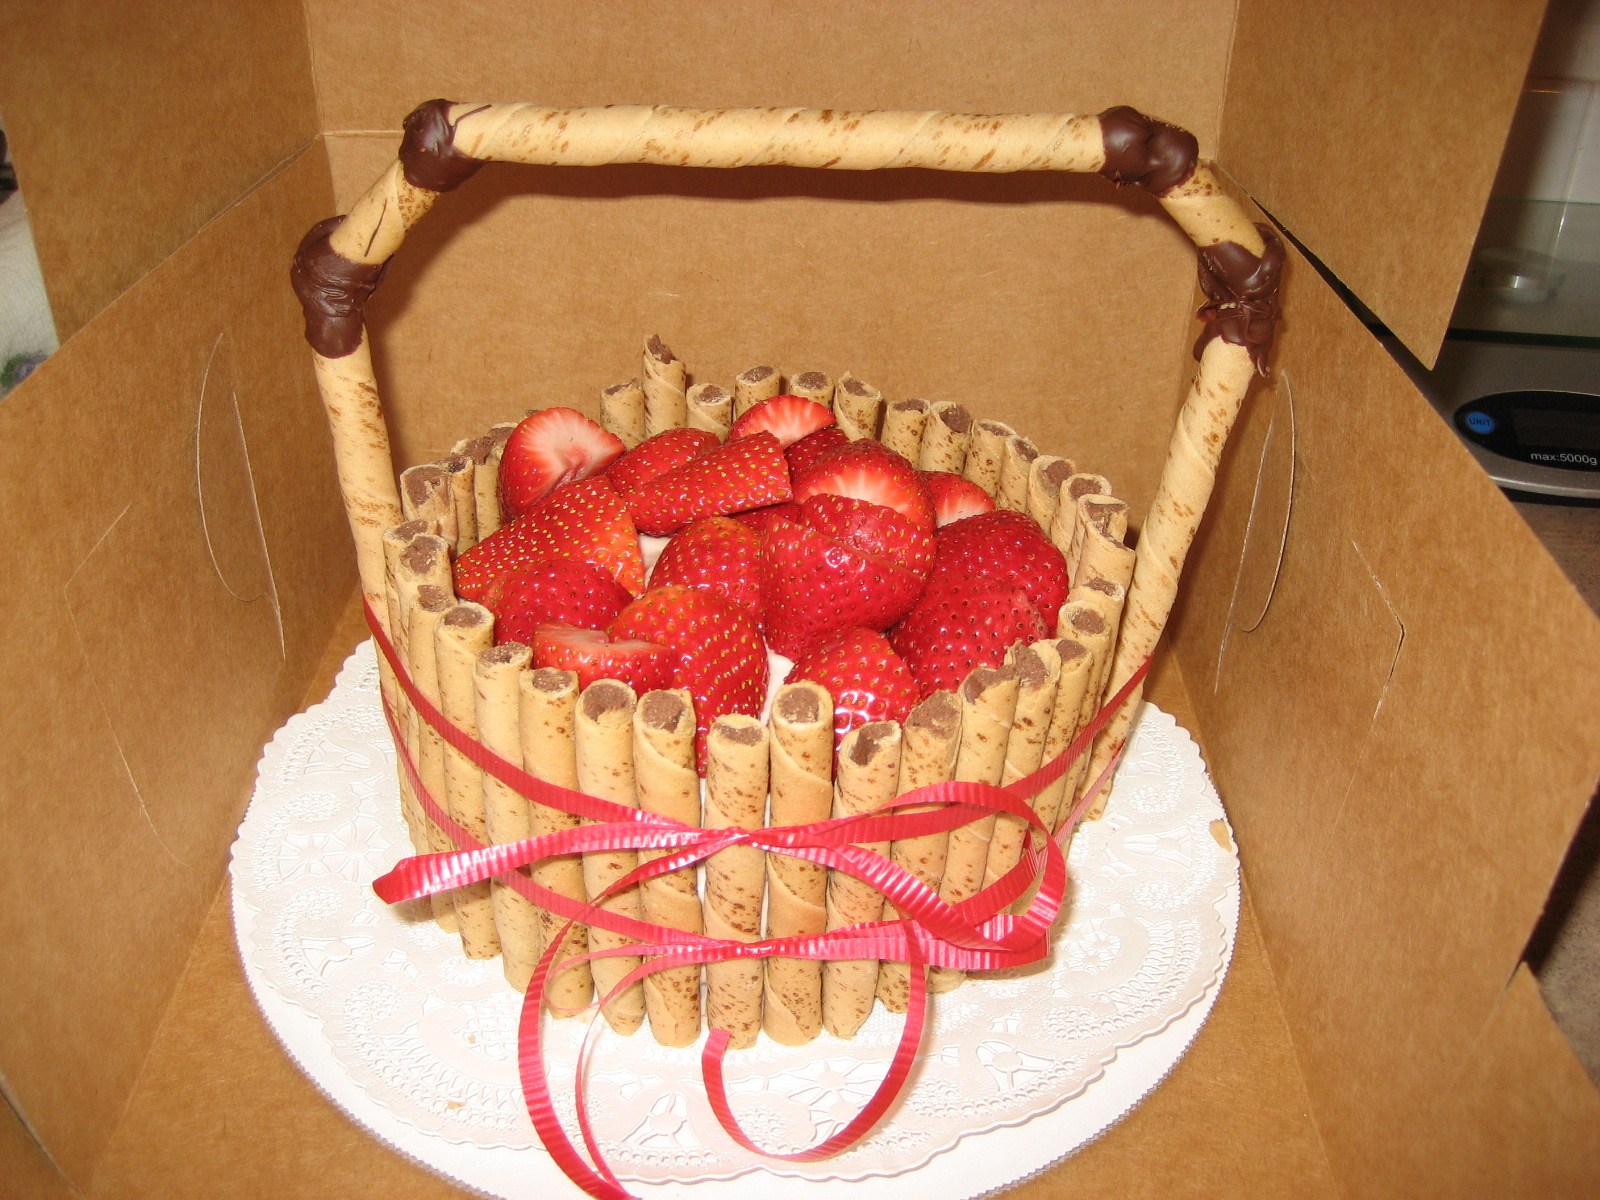 My Homemade Adventure: Strawberry Basket Cake